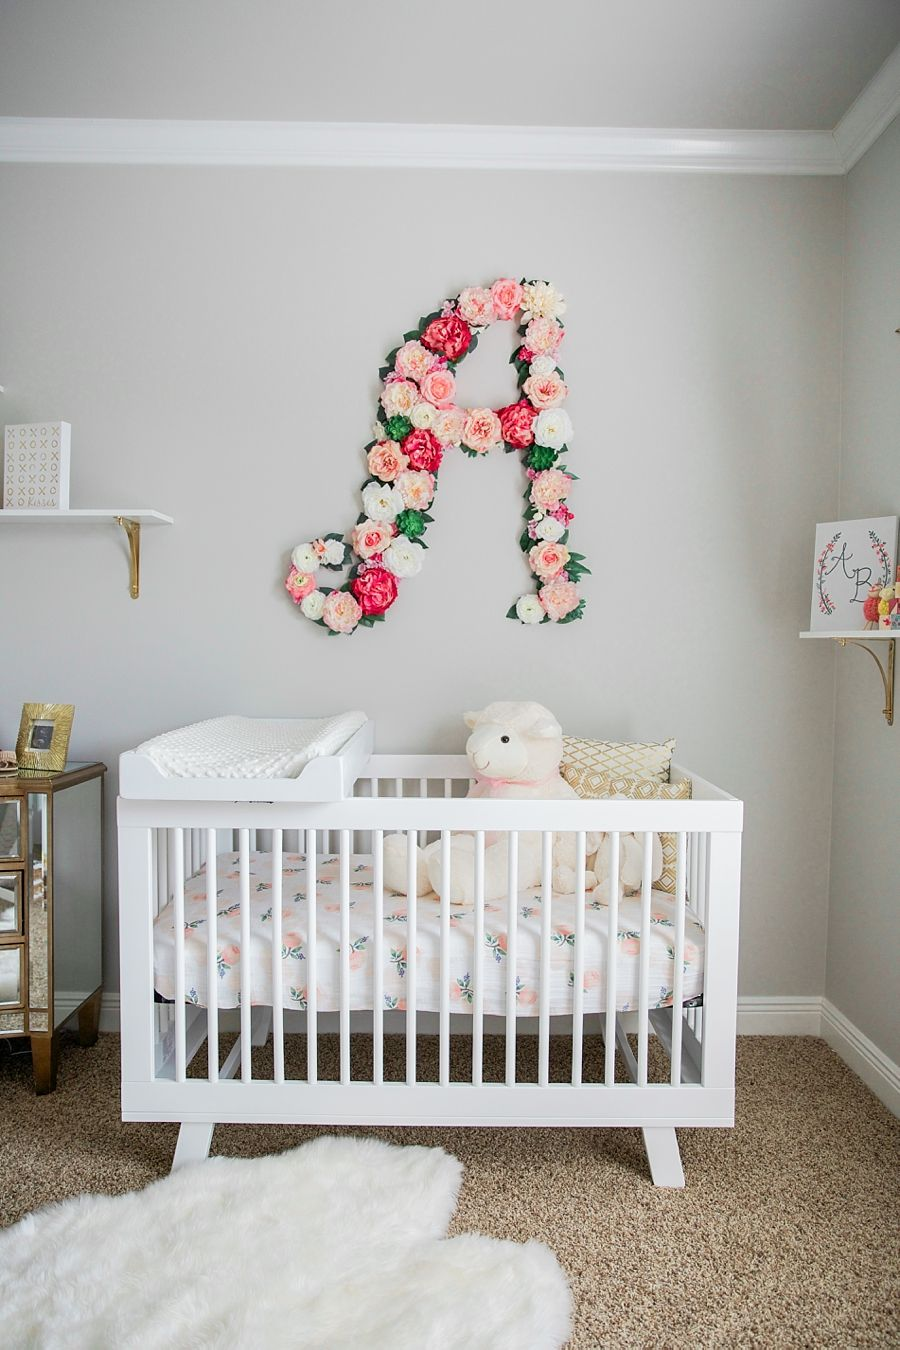 Monogram Decorations For Bedroom Well Here It Is Baby Baileys Nursery Is Finally Complete Well